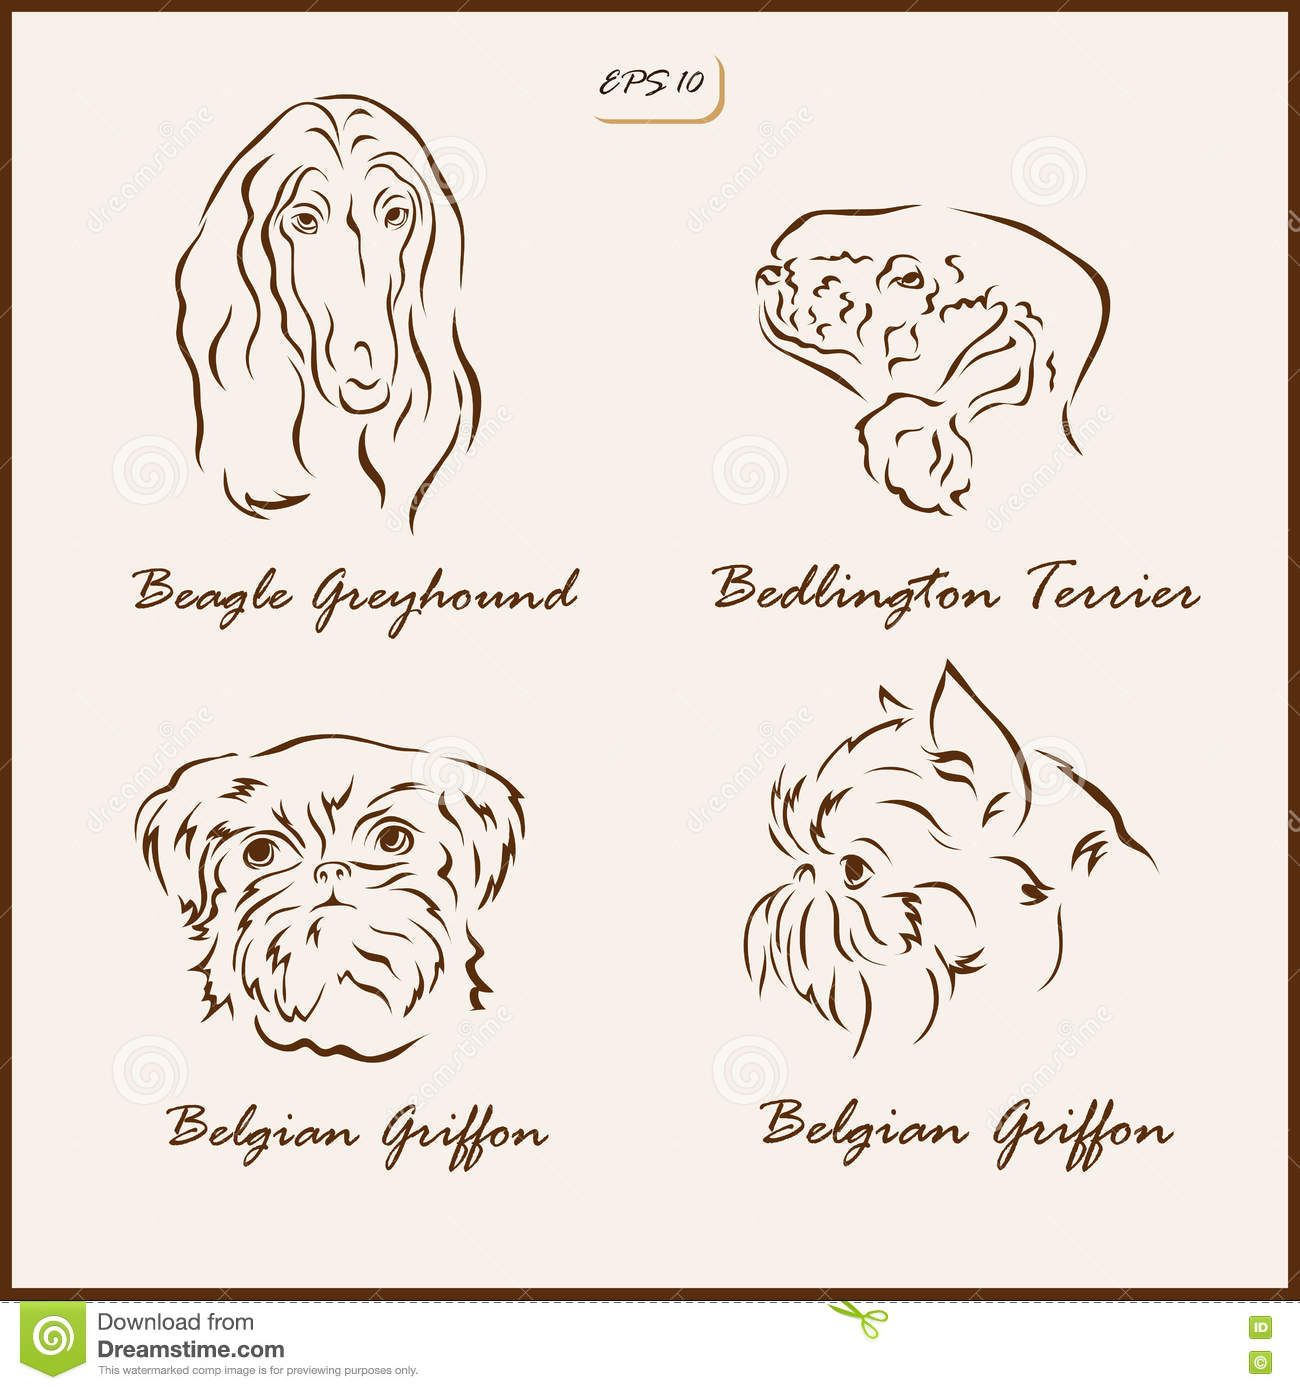 Dog Breeds Set Vector Illustration Shows Beagle Greyhound